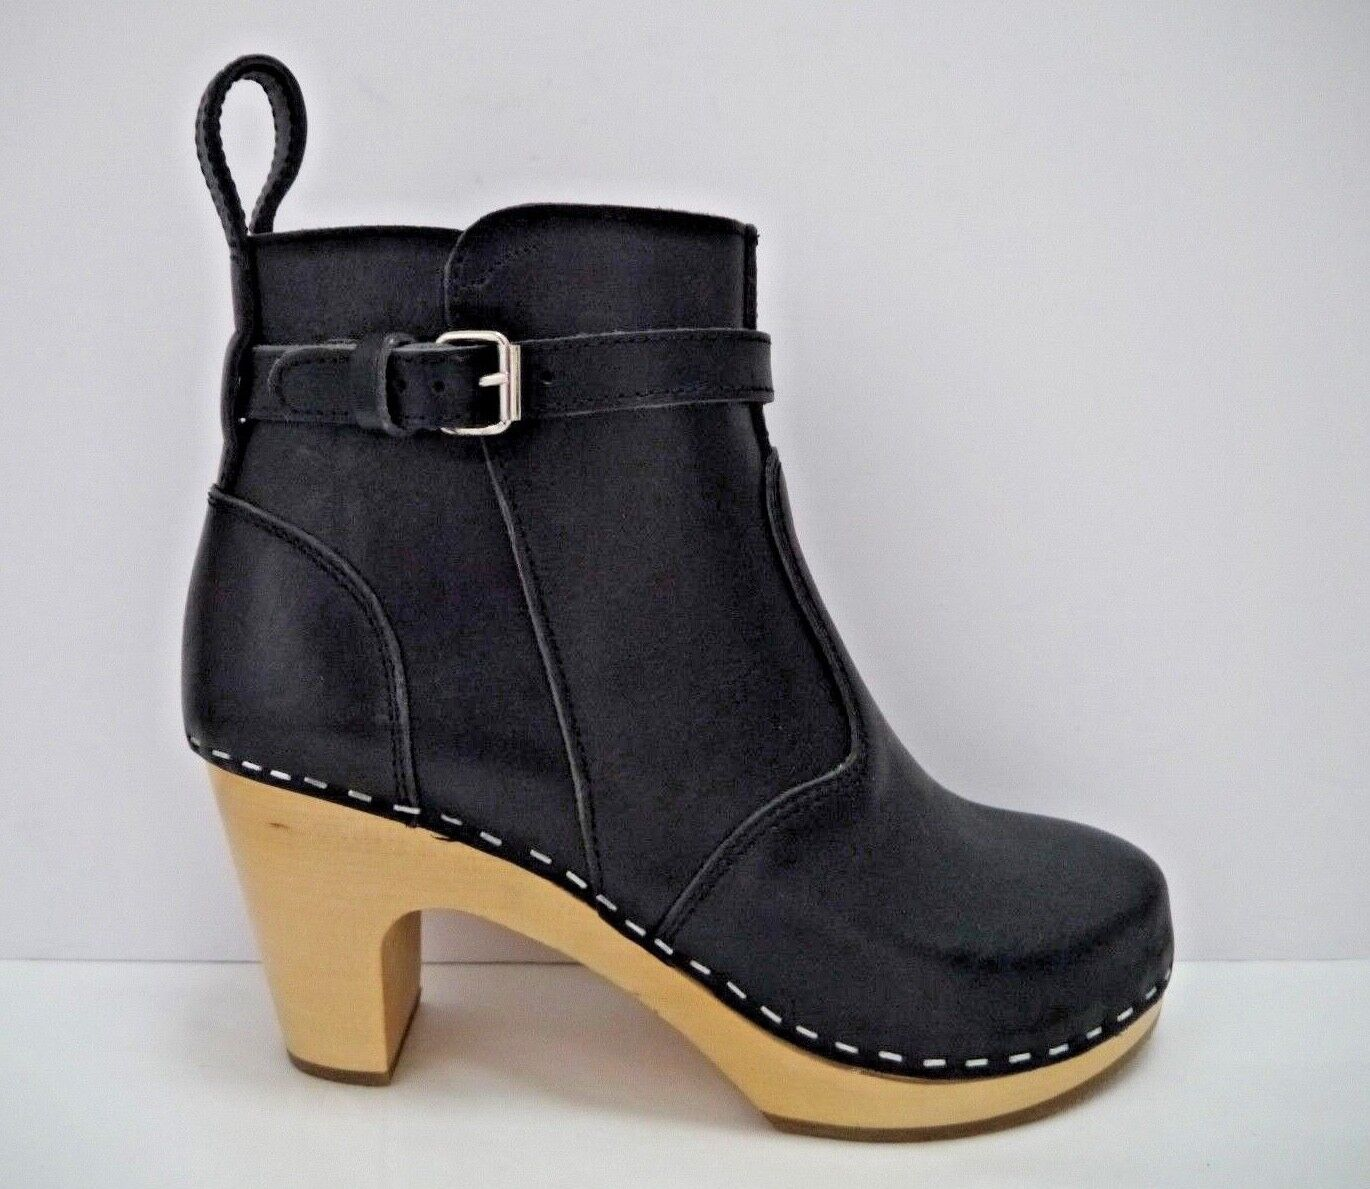 TOFFEL SWEDISH HASBEENS  329 Jodhpur black leather wood heel clog ankle boots 36